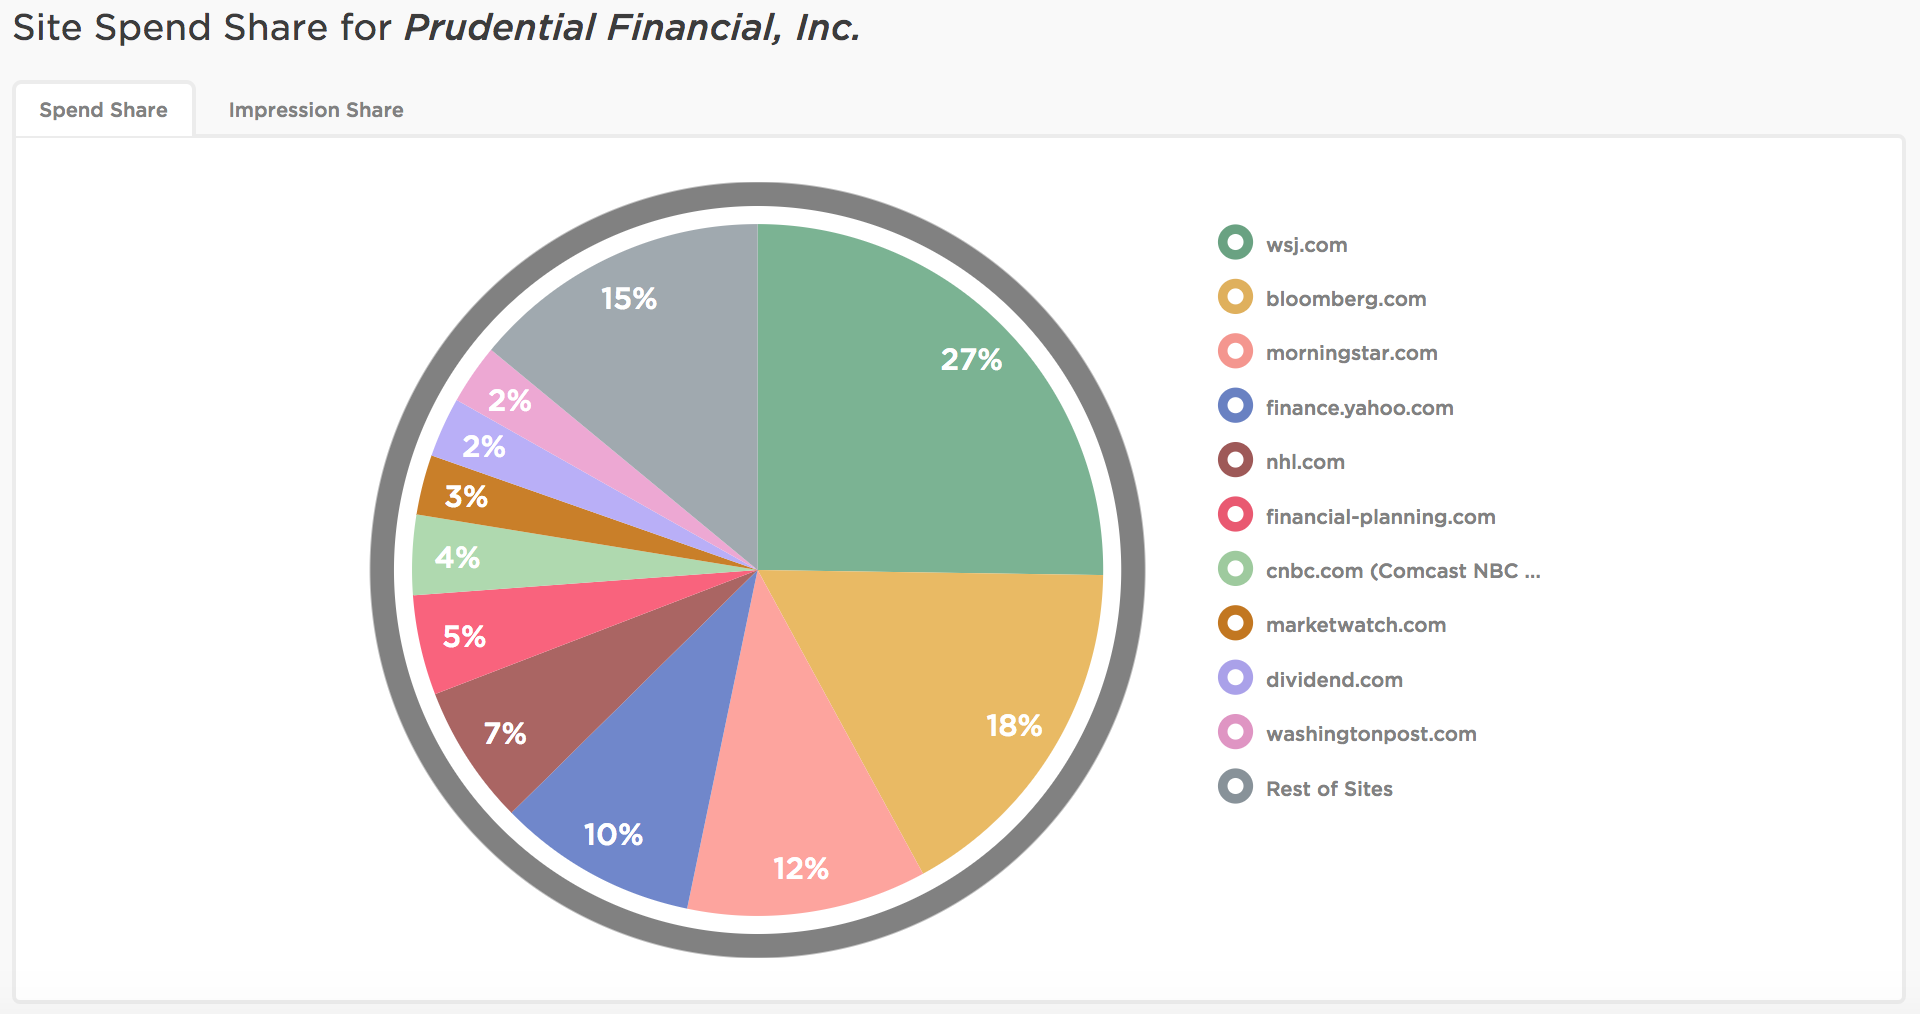 Brand of the Week: Prudential Financial, Inc. - Featured Image